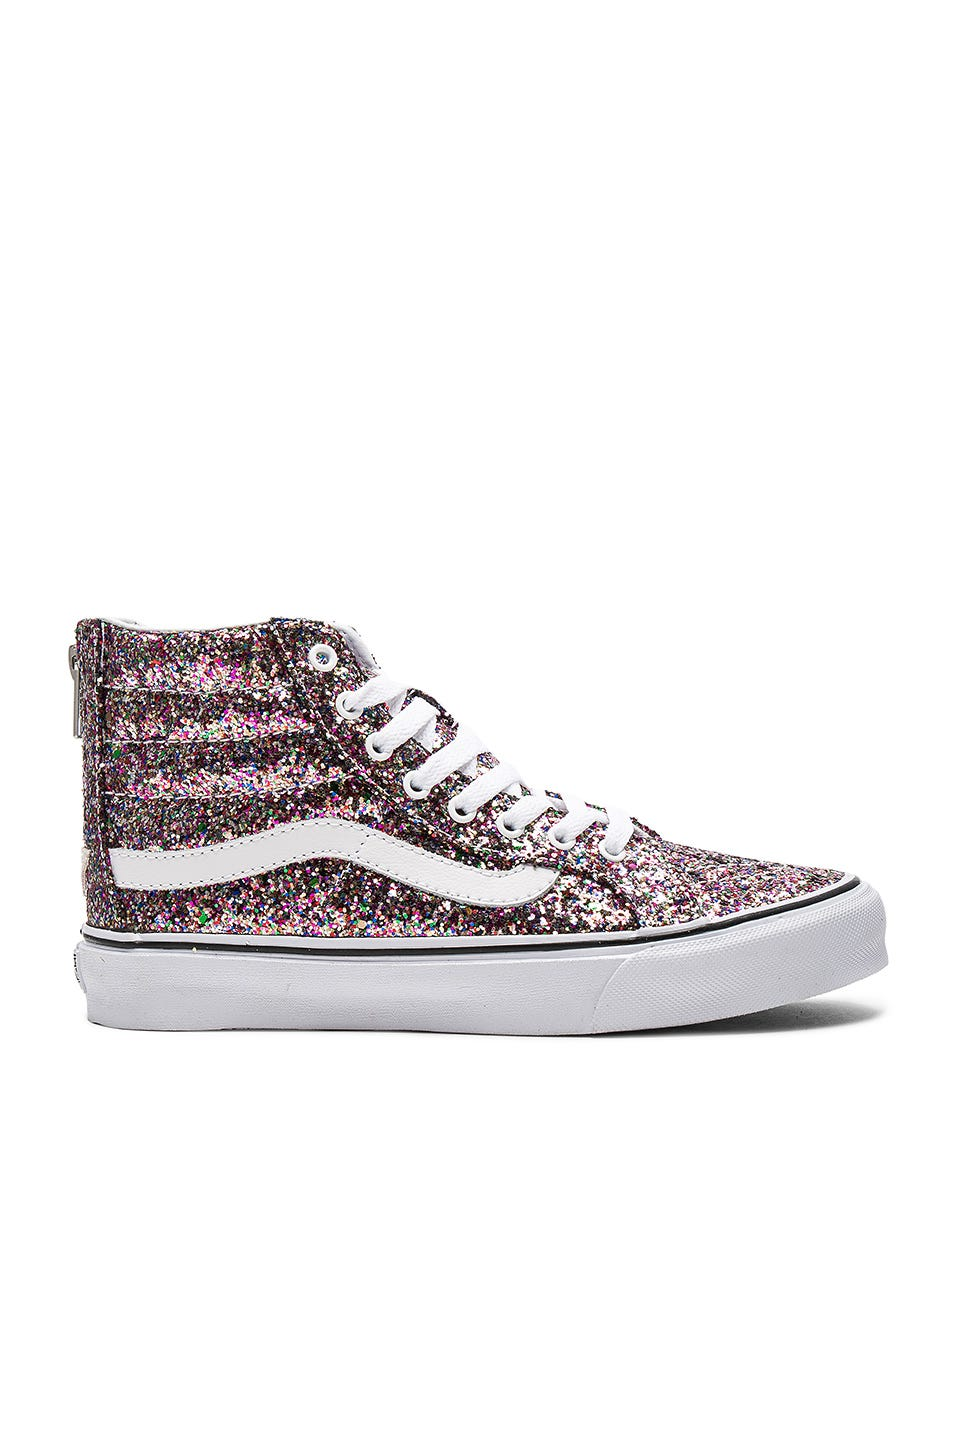 these 20 pairs of glittery shoes are so mesmerizing refinery29 howldb. Black Bedroom Furniture Sets. Home Design Ideas